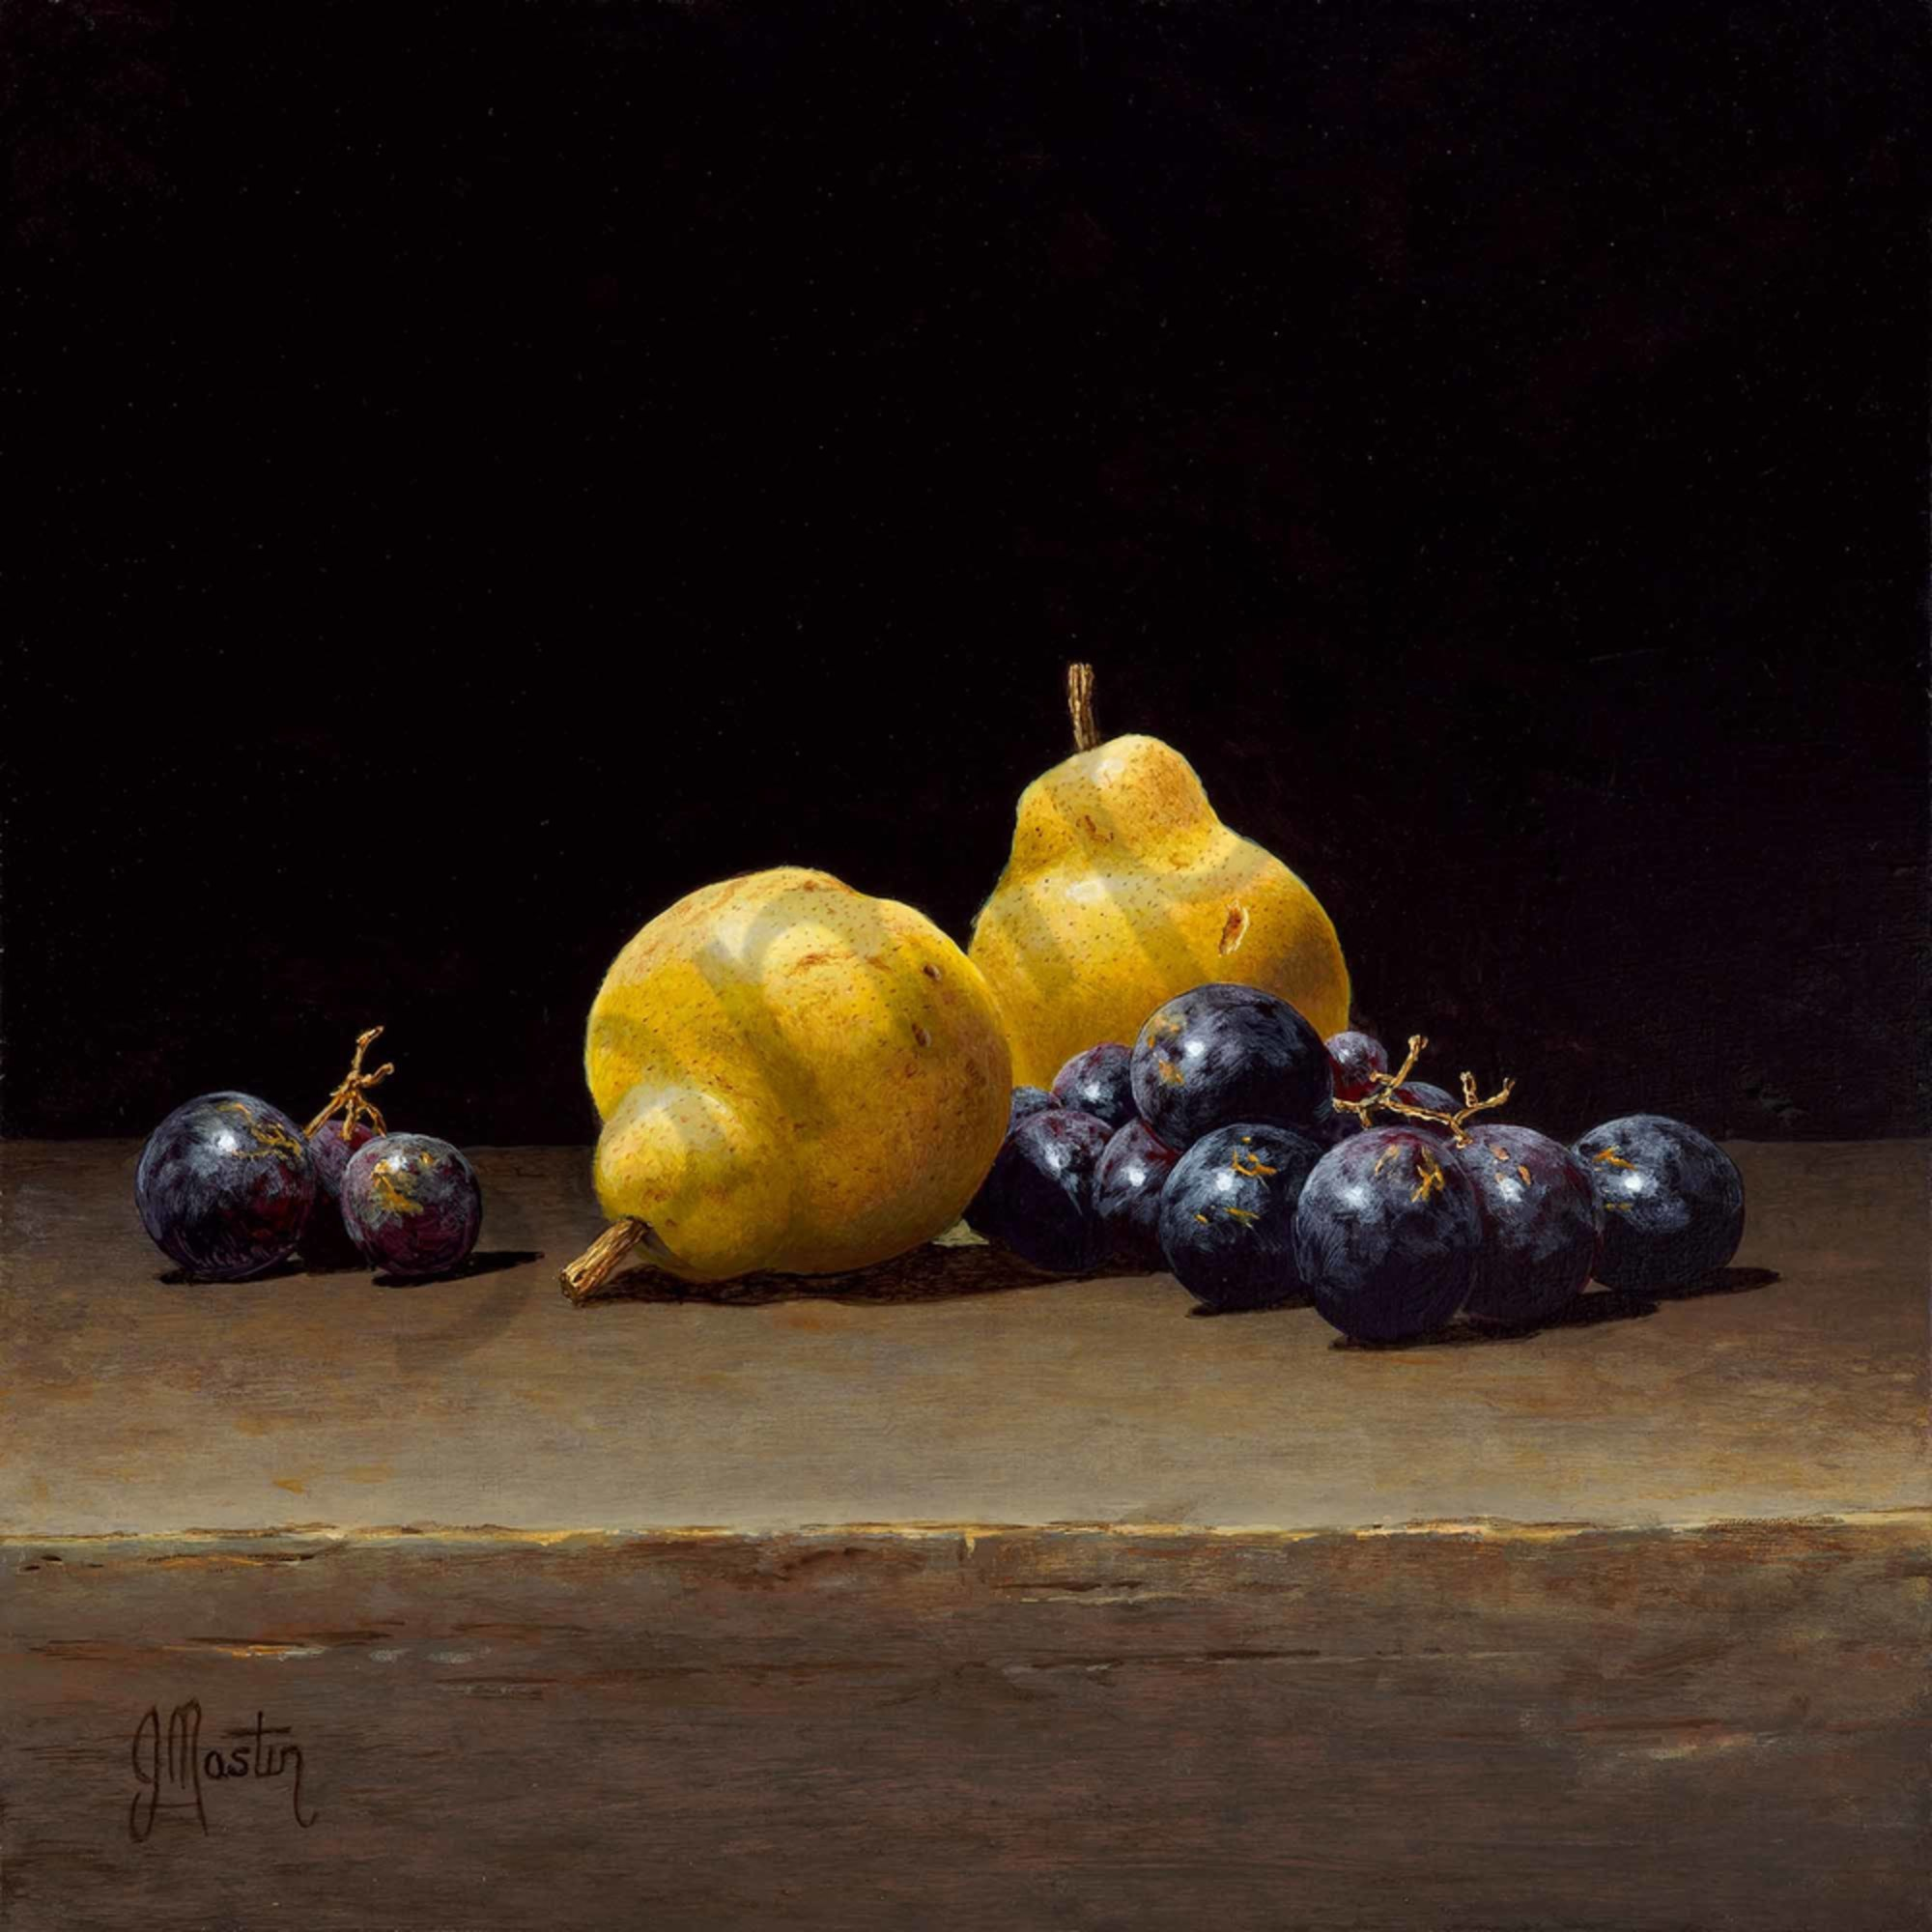 Ian mastin 006 still life with pears and grapes 2000px yftqgz